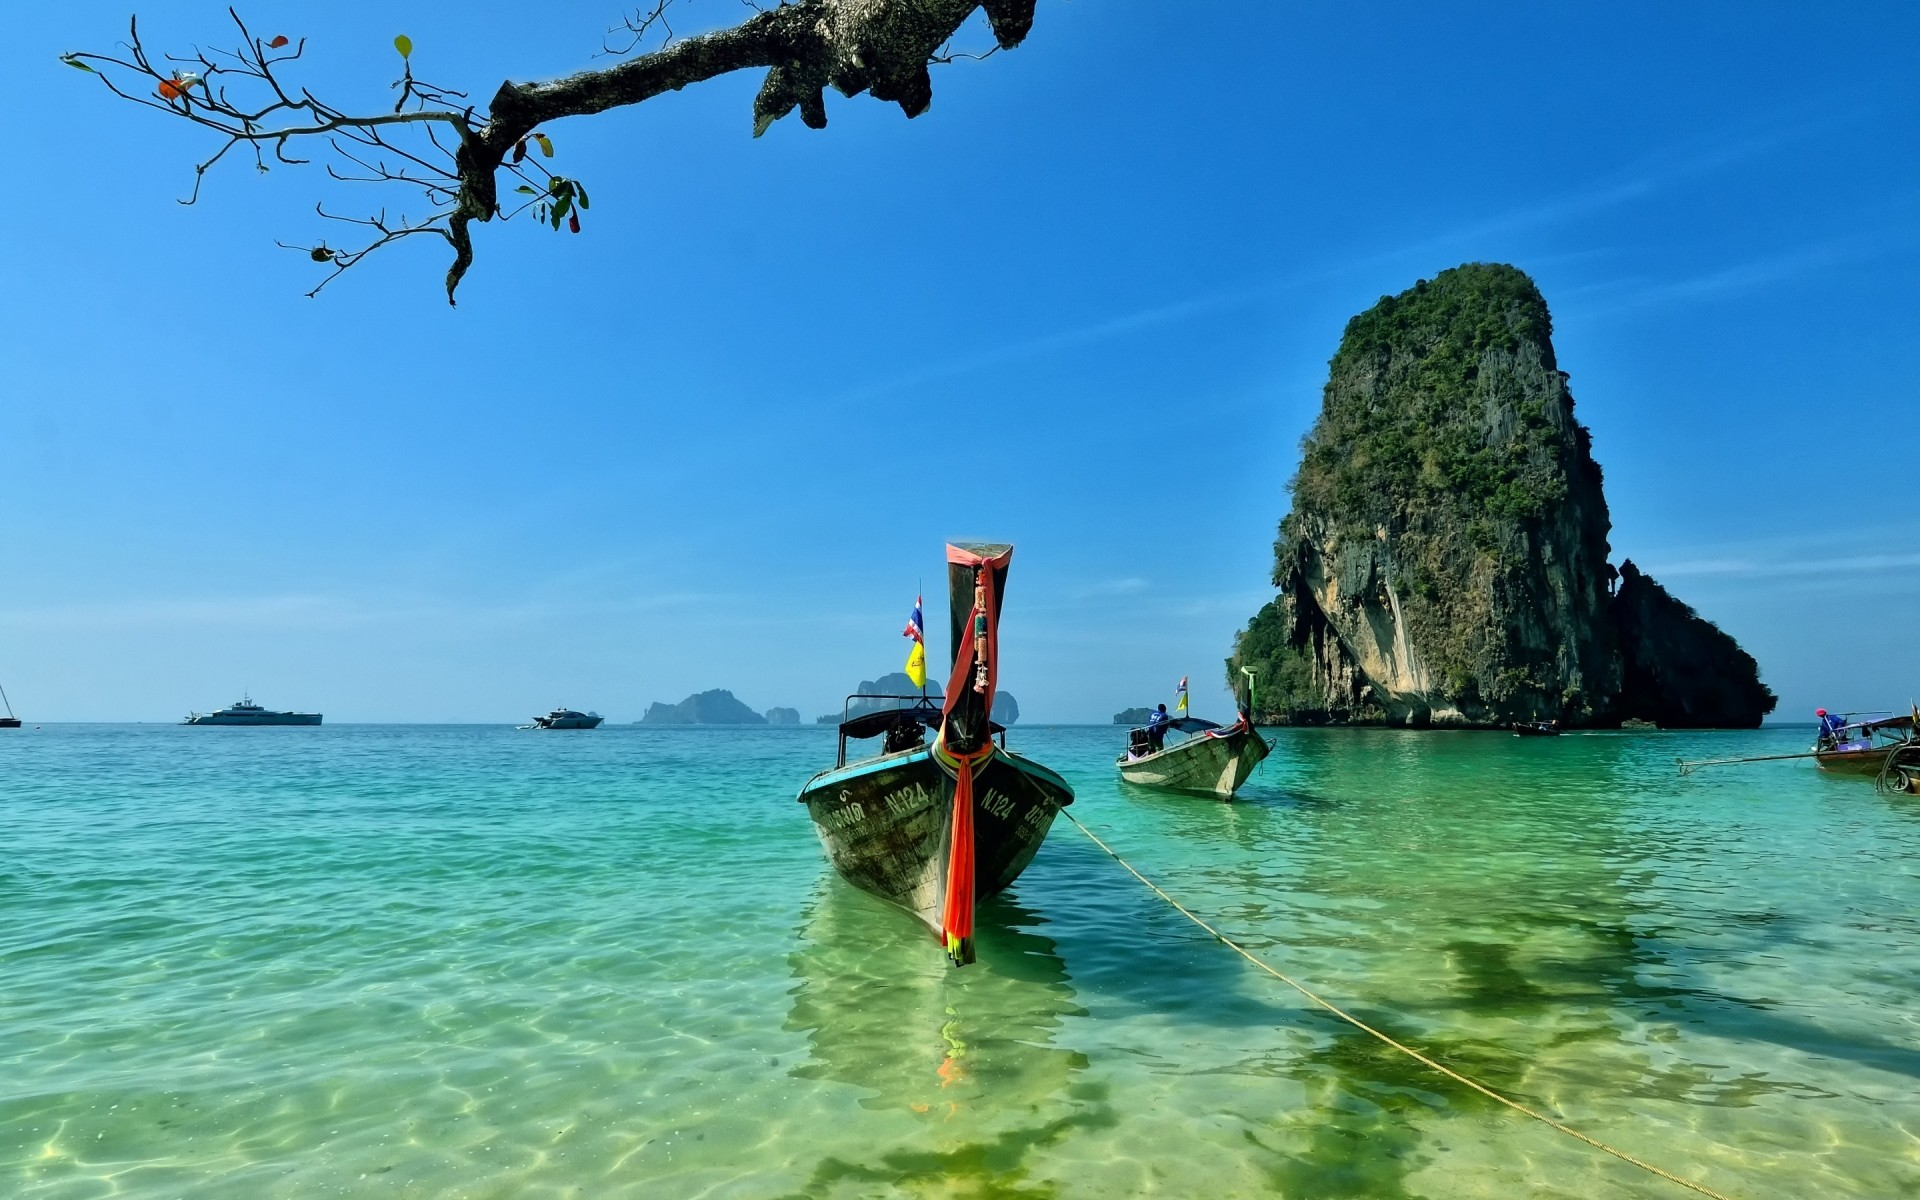 other city water travel beach tropical island ocean seashore sea summer turquoise vacation recreation sand bay exotic sky lagoon idyllic nature railay beach krabi town thailand landscape